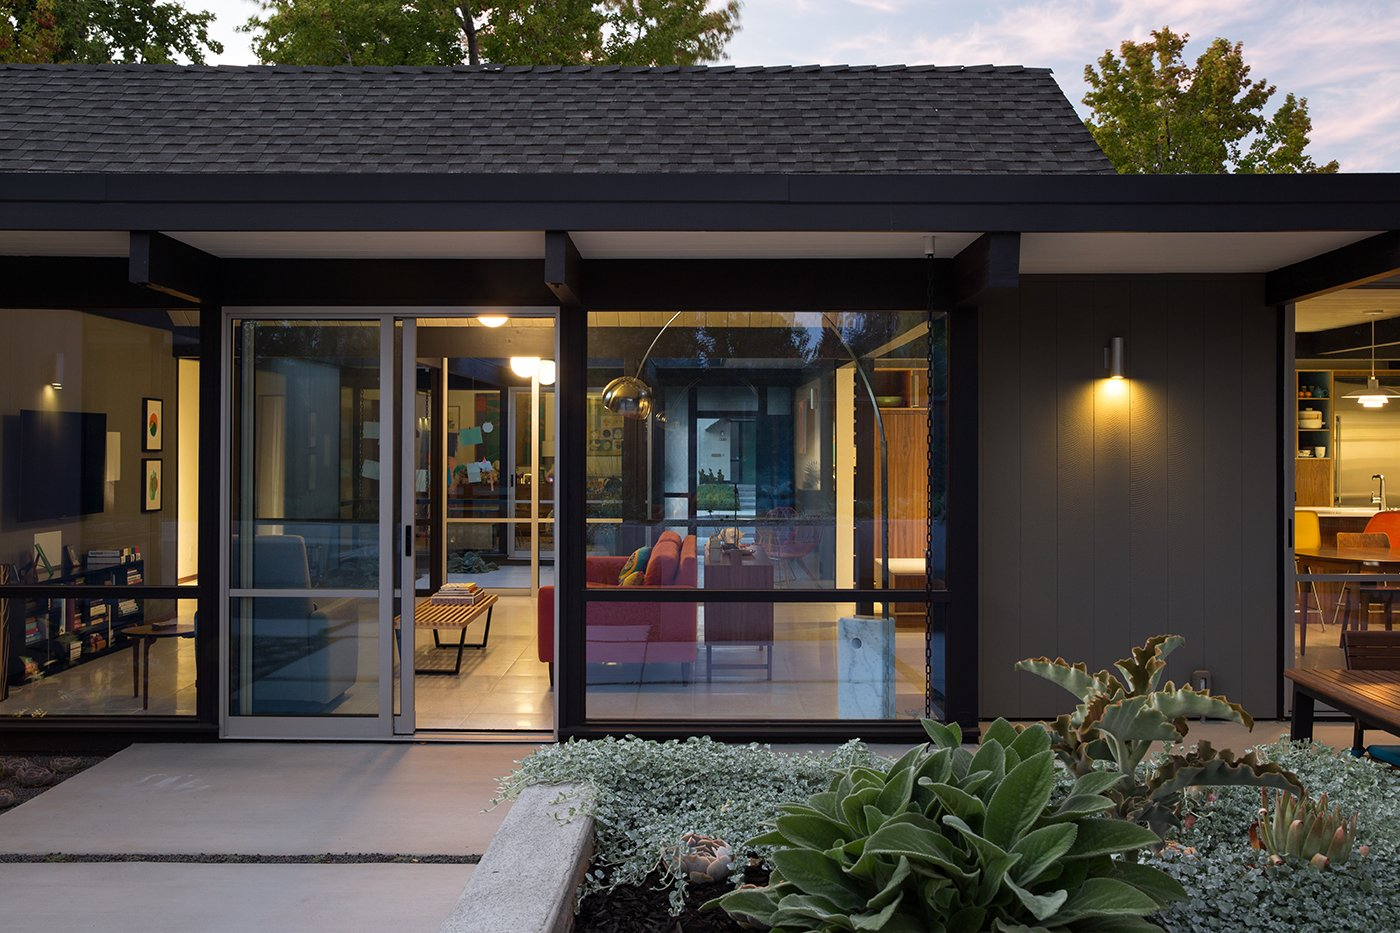 """Exterior, Mid-Century Building Type, and House Building Type Renewed Classic Eichler Remodel  Klopf Architecture, Growsgreen Landscape Design, and Flegel's Construction partnered to bring this mid-century atrium Eichler home up to 21st century standards. Together with the owners, Geoff Campen and the Klopf Architecture team carefully integrated elements and ideas from the mid-century period without making the space seem dated. They entrusted Klopf Architecture to respectfully expand and update the home, while still keeping it """"classic"""". The Klopf team helped them open up the kitchen, dining, and living spaces into one flowing great room, expand the master suite, replace the kitchen and bathrooms, and provide additional features like an office and powder room, all while maintaining the mid-century modern style of this Silicon Valley home.   Klopf Architecture"""